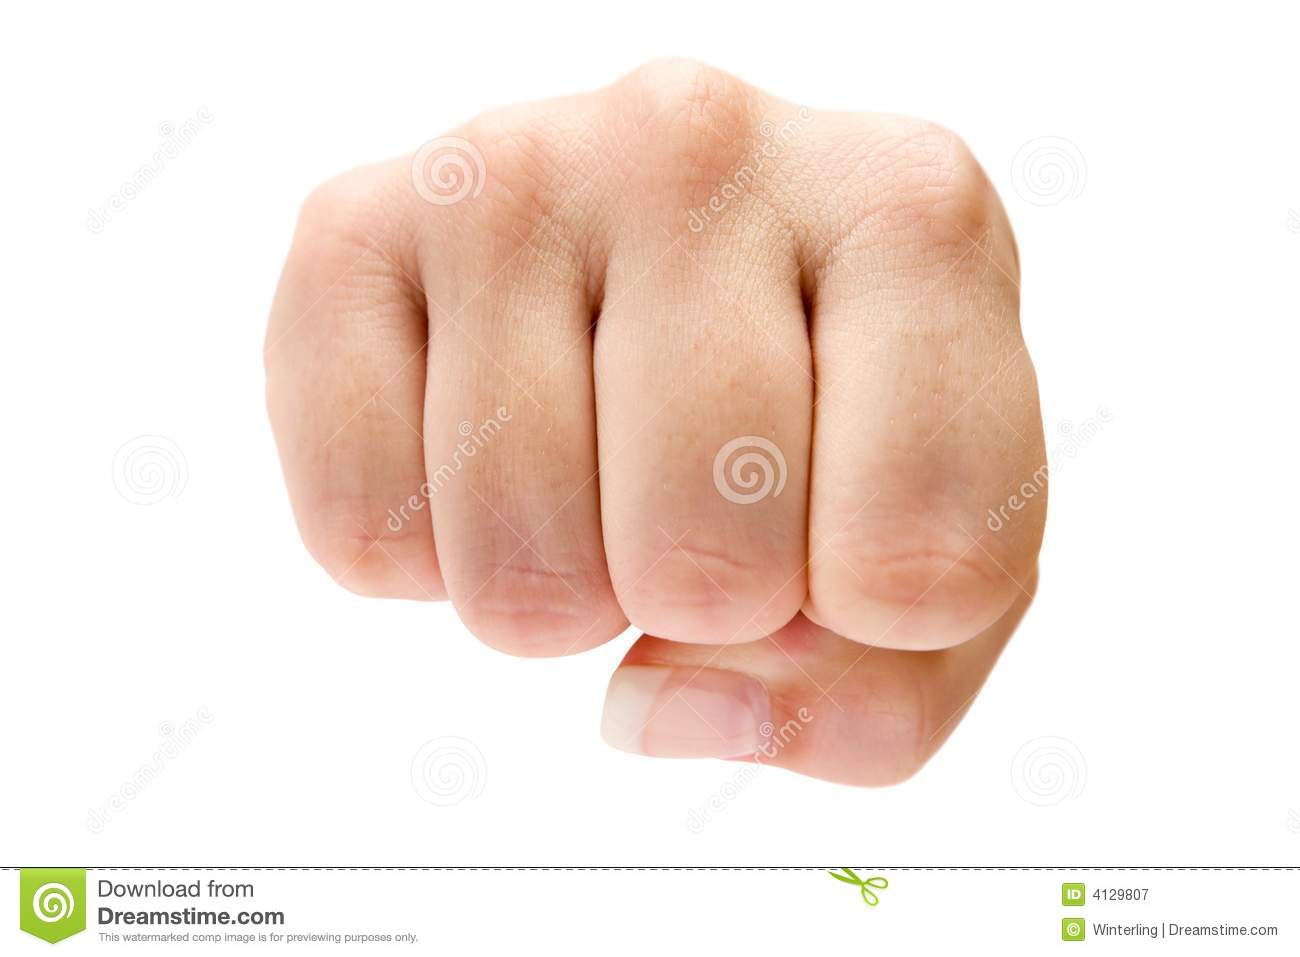 Fist Royalty Free Stock Photography - Image: 4129807: www.dreamstime.com/royalty-free-stock-photography-fist-image4129807